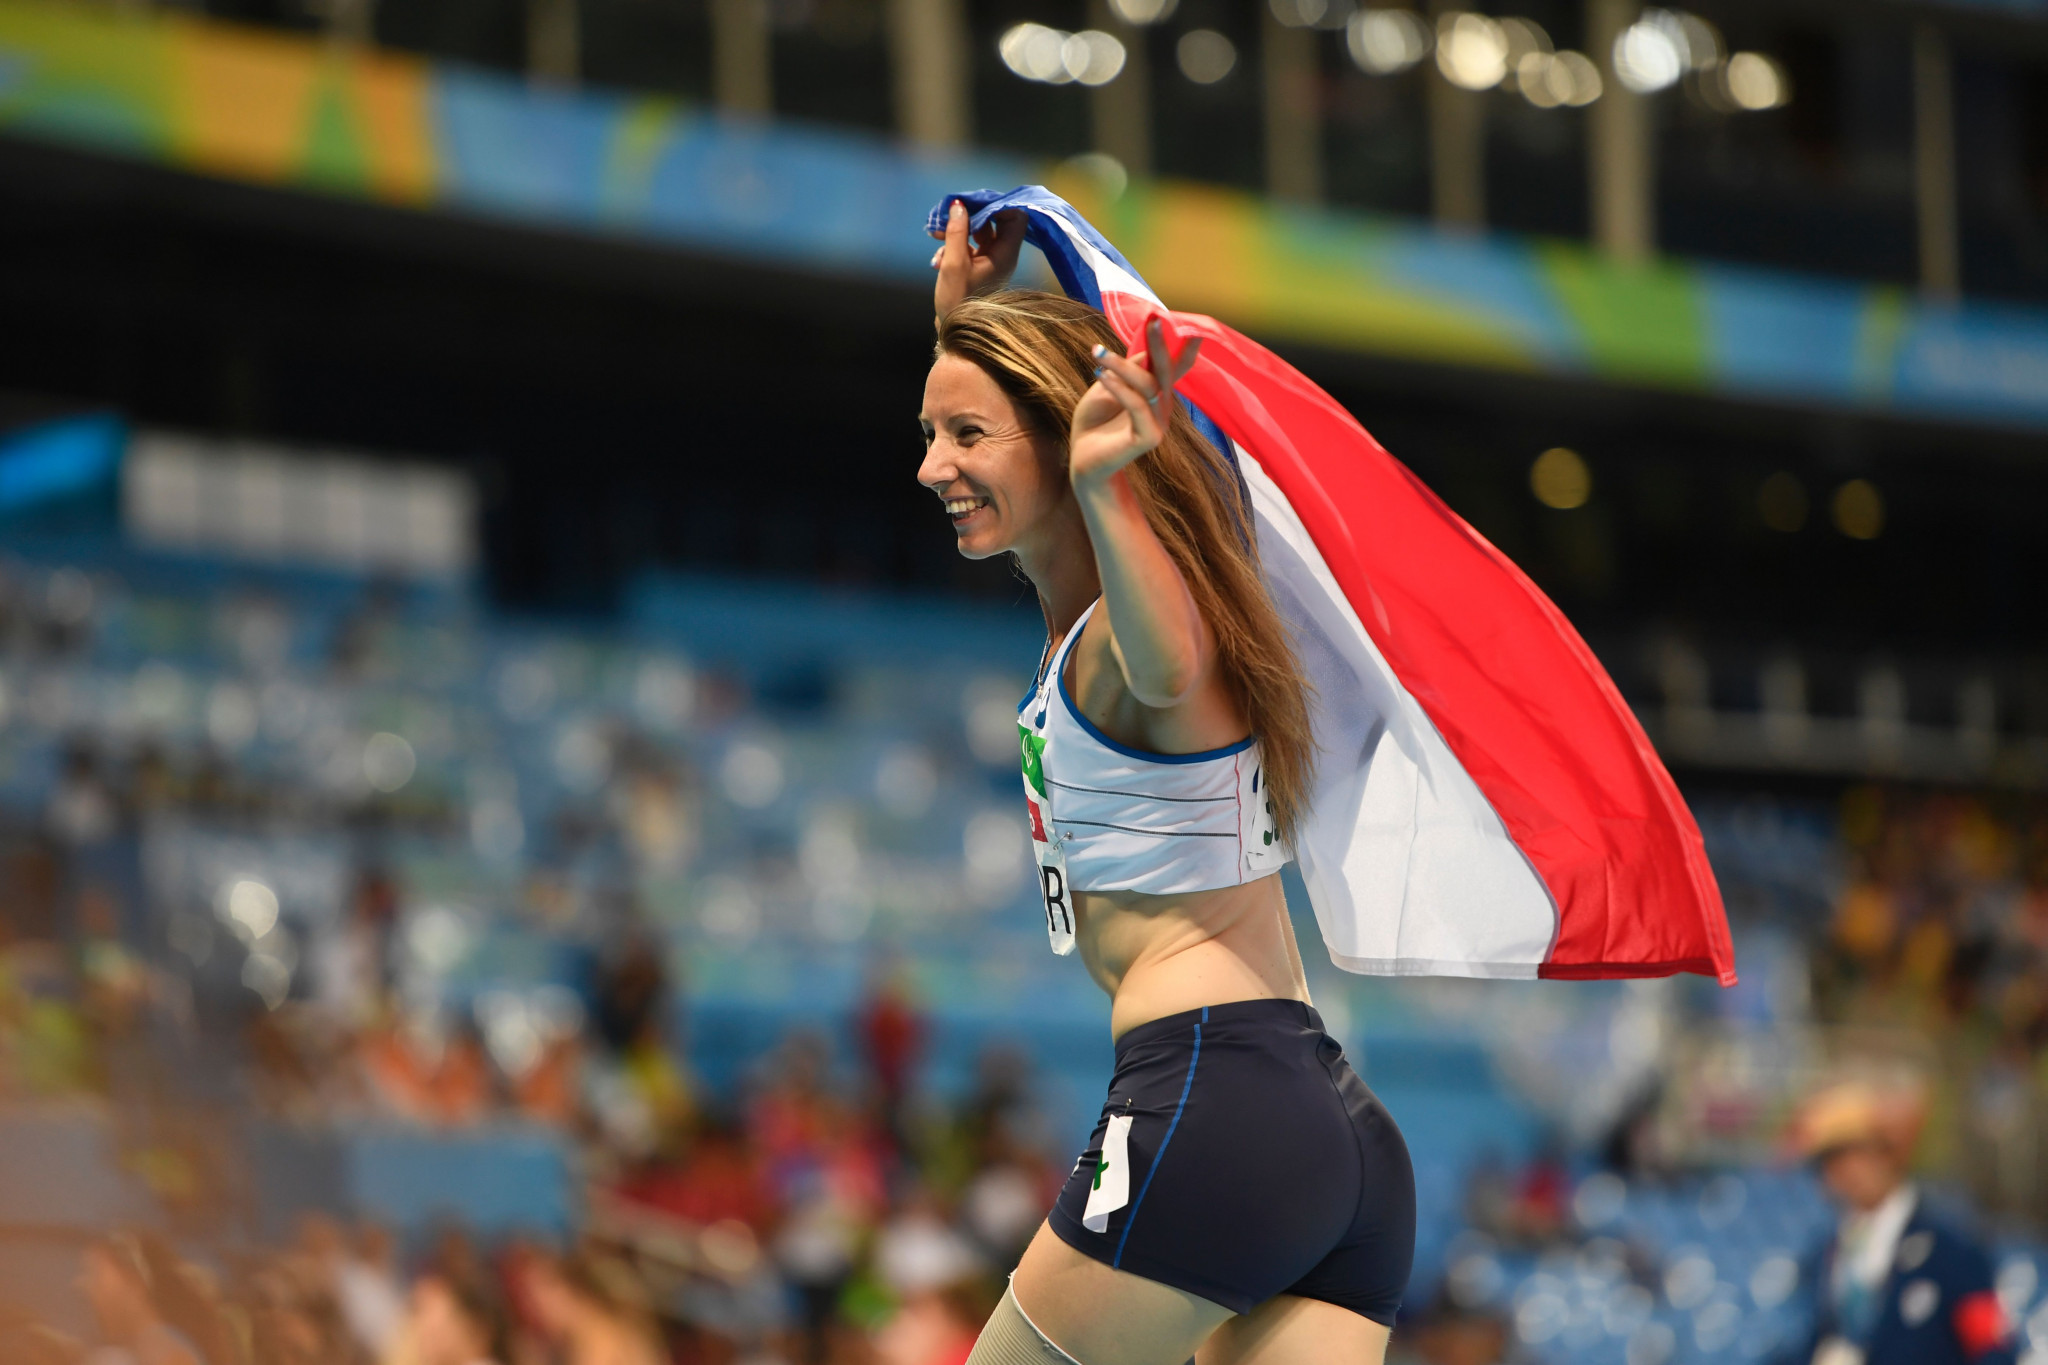 Successful return to athletics for French Para-long jumper Le Fur